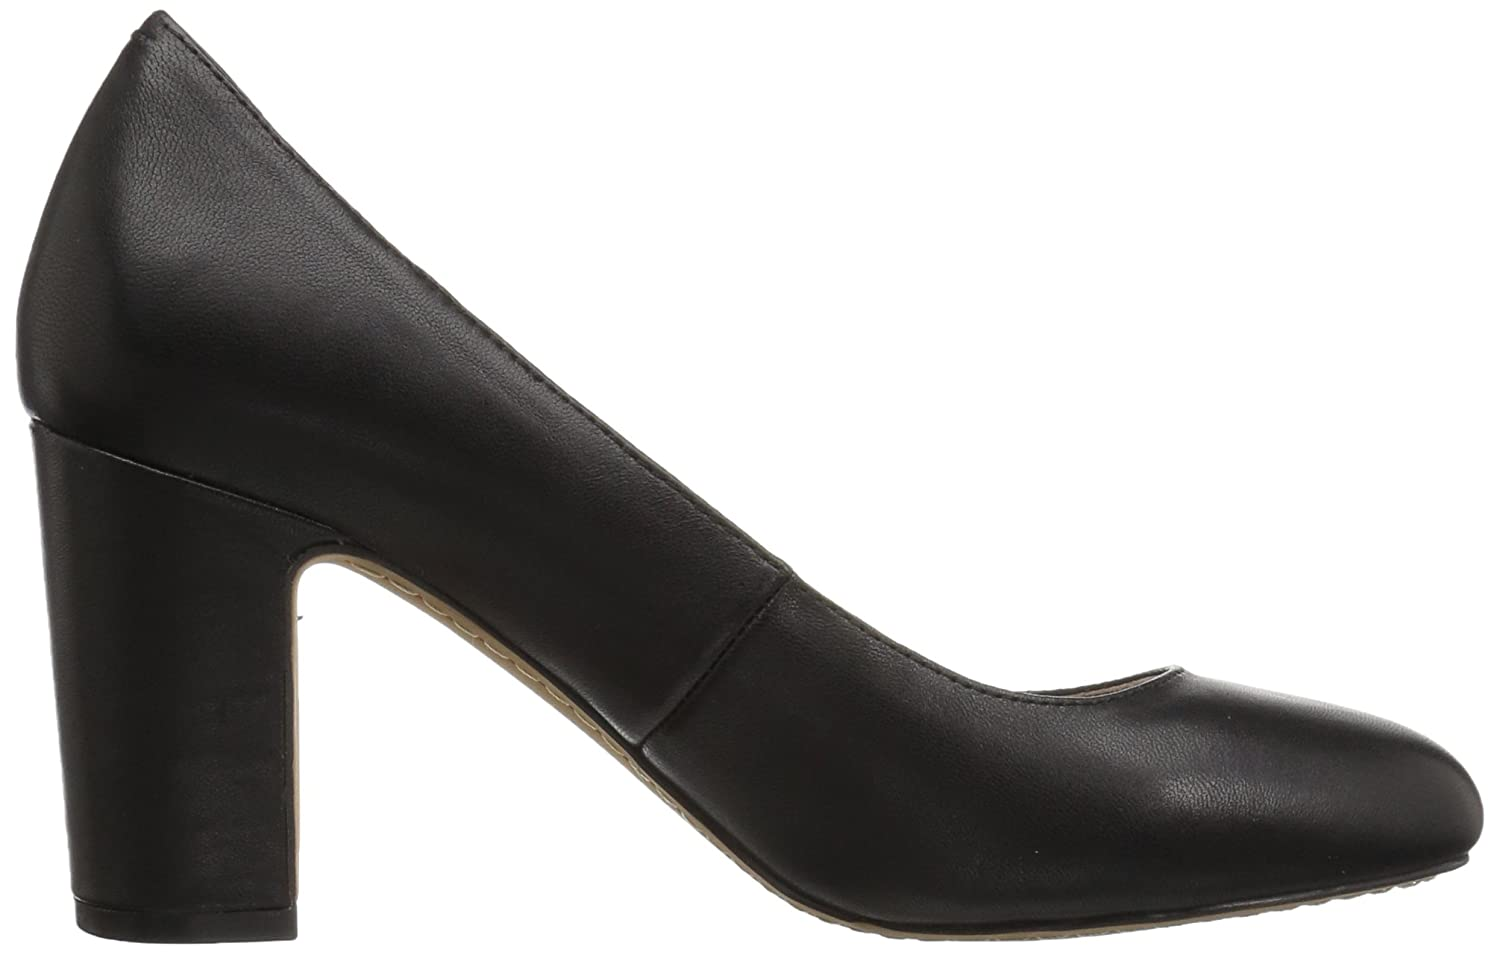 206 Collective Women's Coyle Round Toe Block Heel High Pump B0789FHVZ1 11.5 C/D US|Black Leather